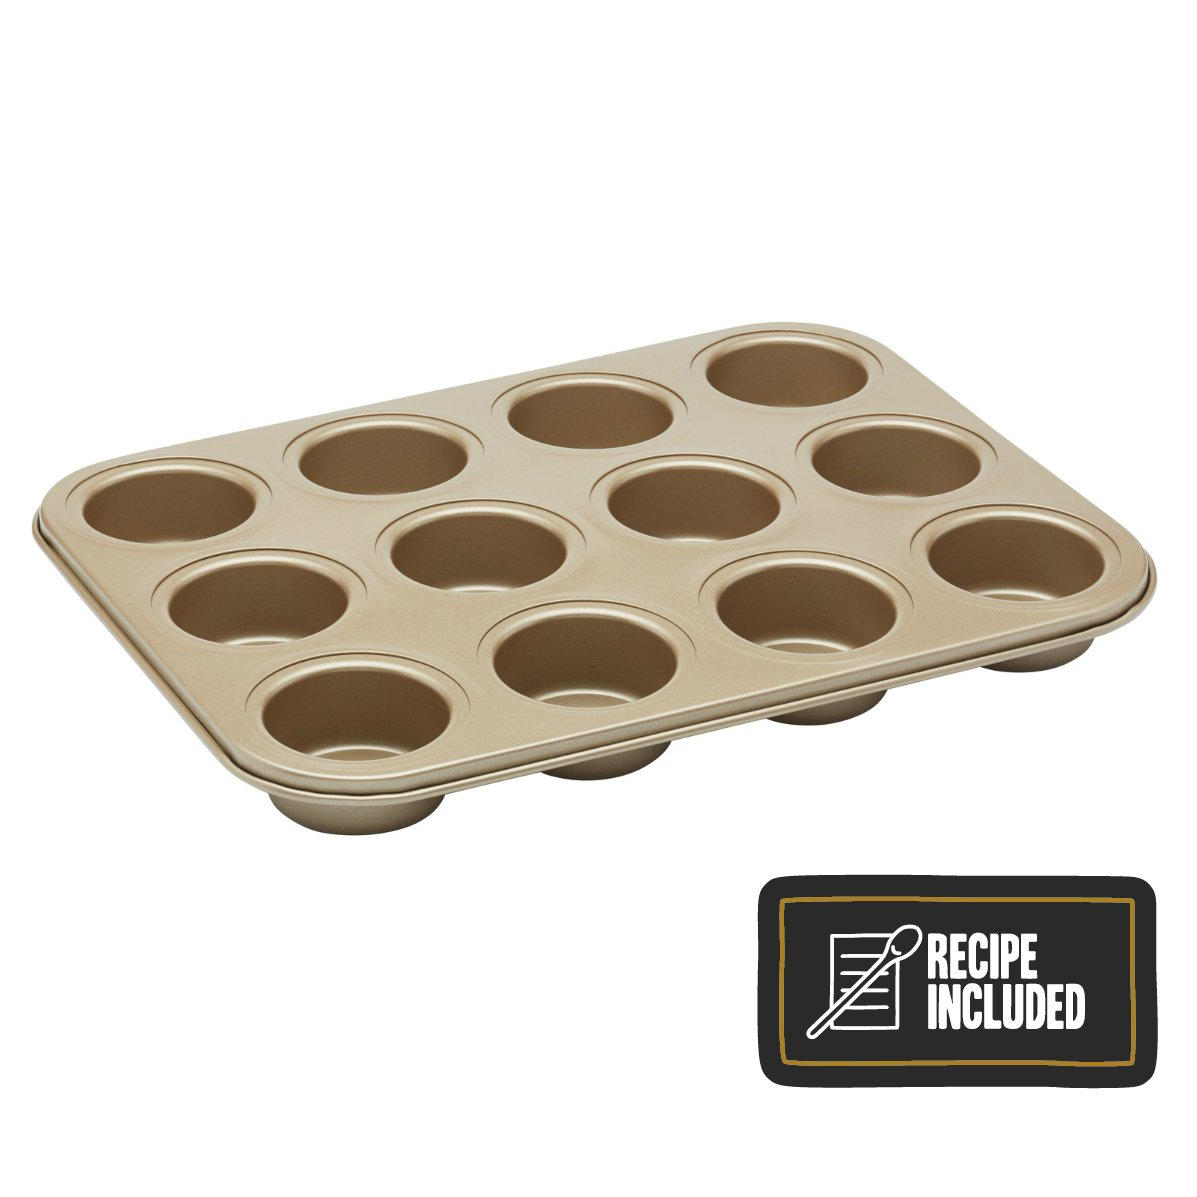 KitchenCraft Paul Hollywood 12-Hole Non-Stick Baking Tin, 31.5 x 24 cm (12.5 x 9.5) (with Recipe) Kitchen Craft PHHB101